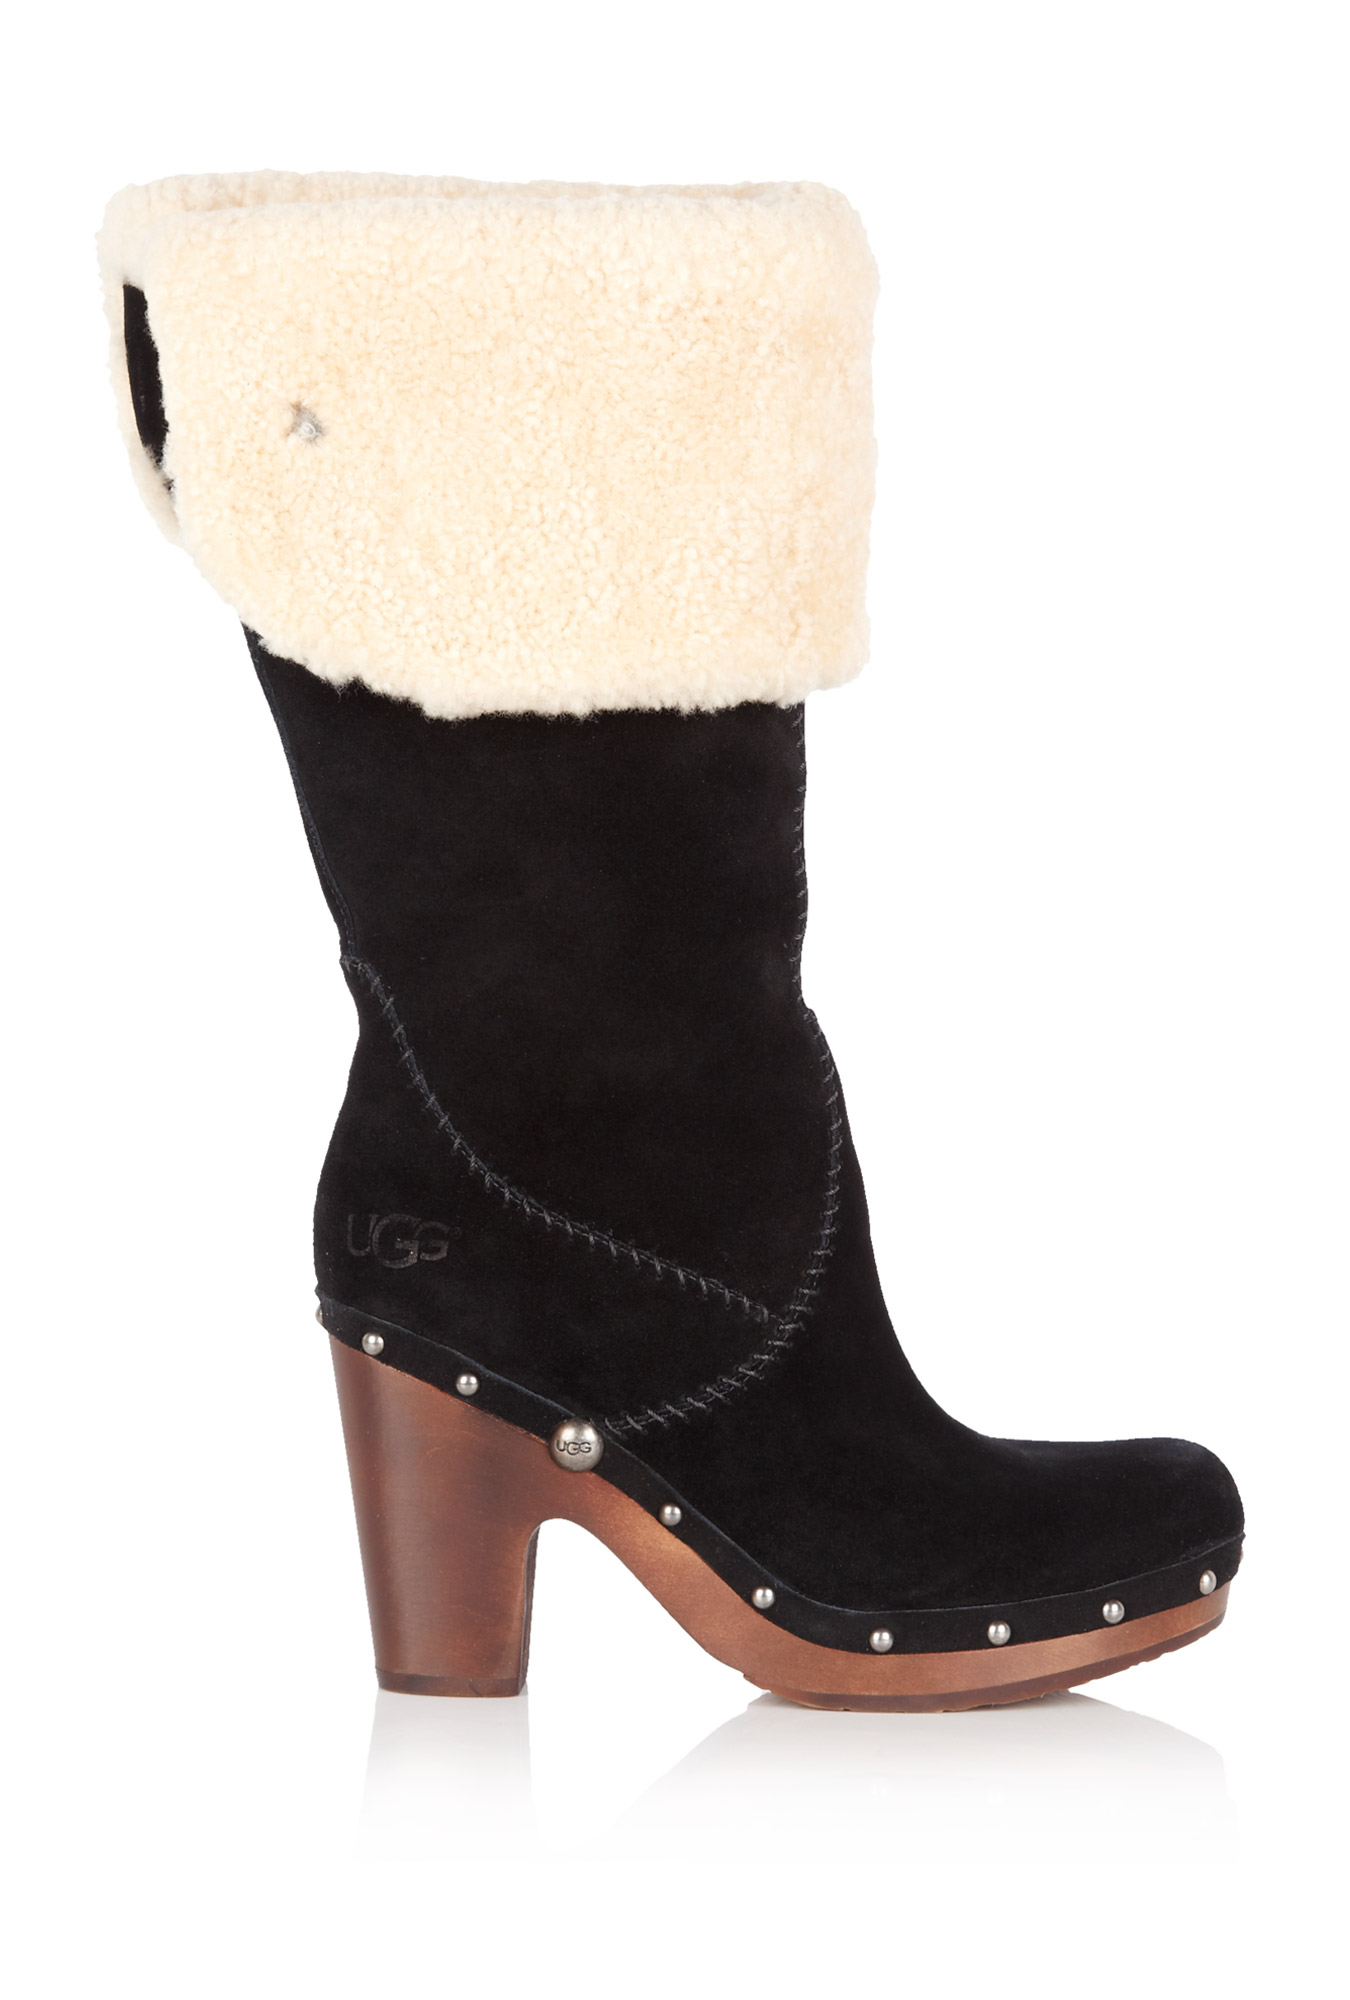 ugg black lilian knee high clog boot in black lyst